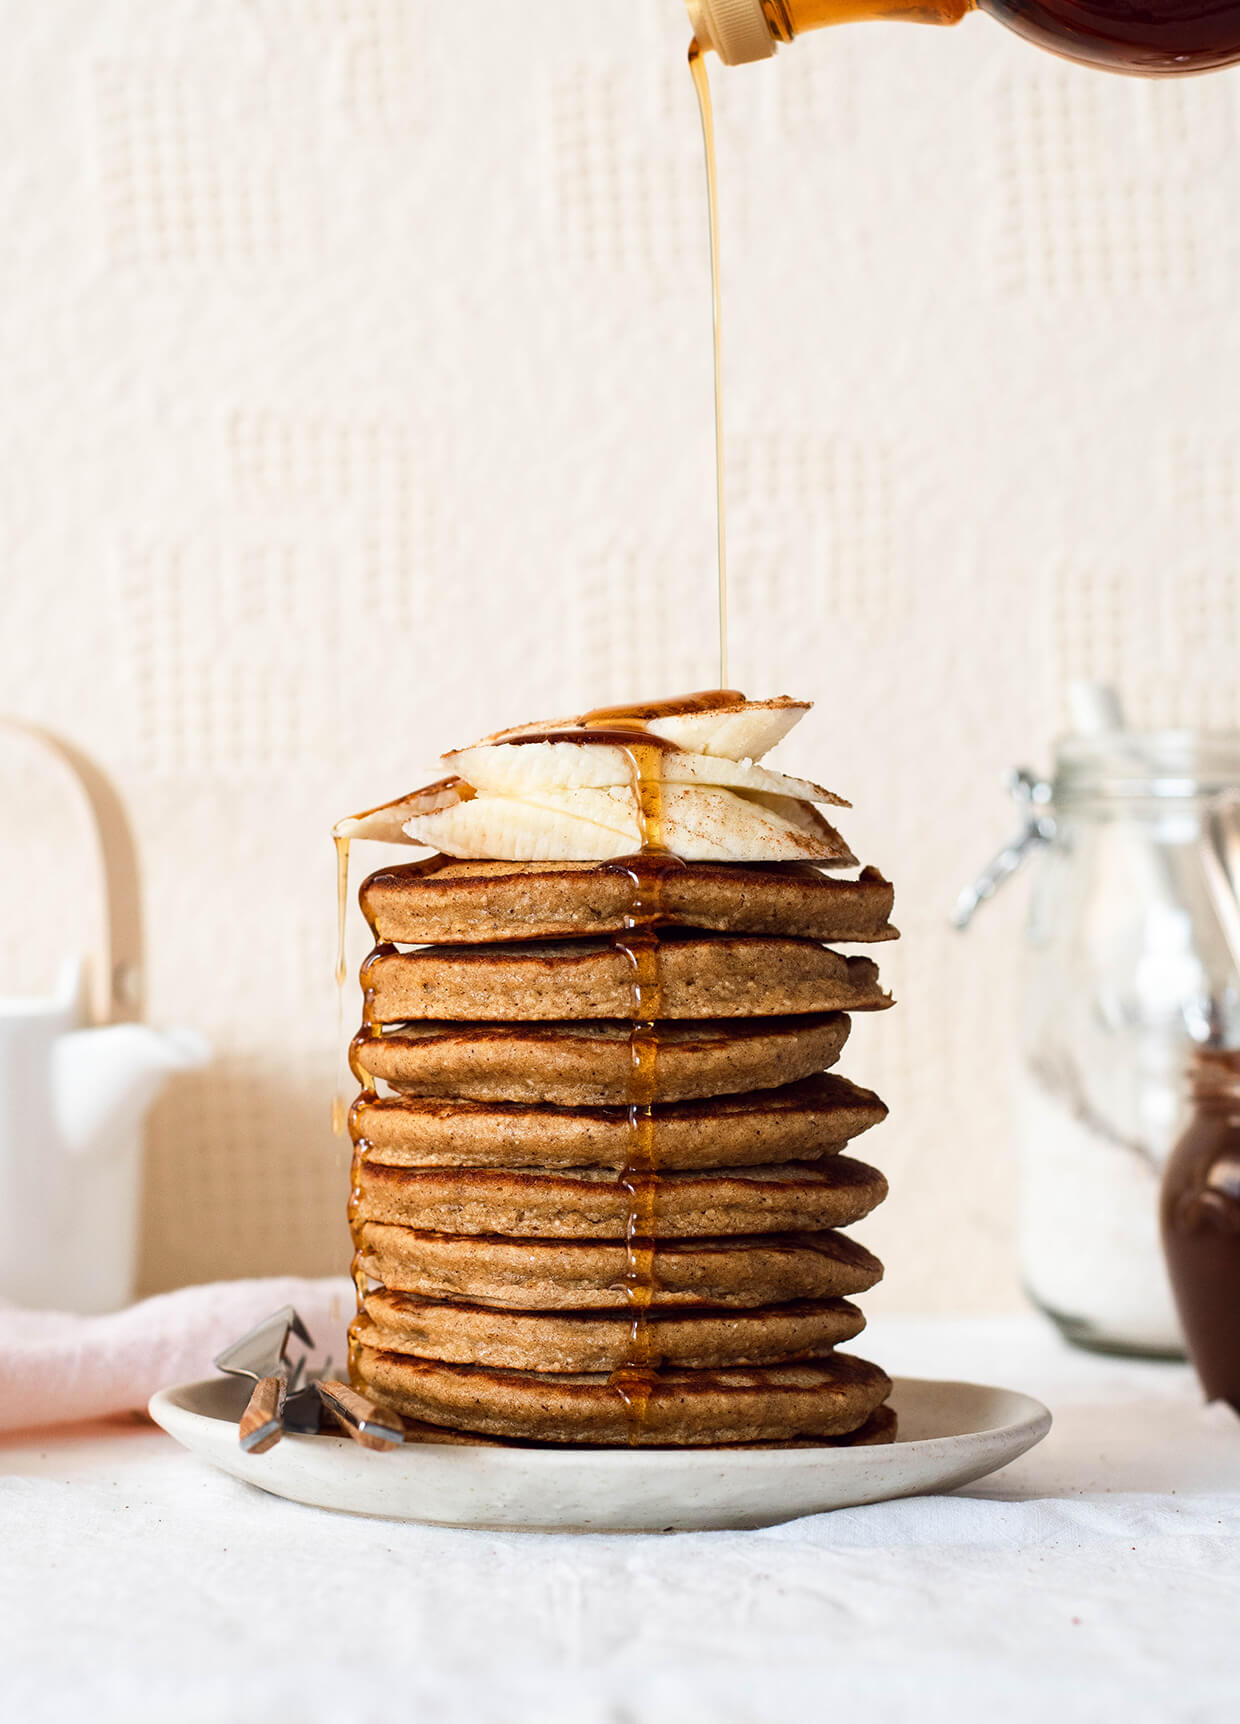 Recipe for fluffy simple oatmeal banana pancakes - a healthy version of your regular pancakes.